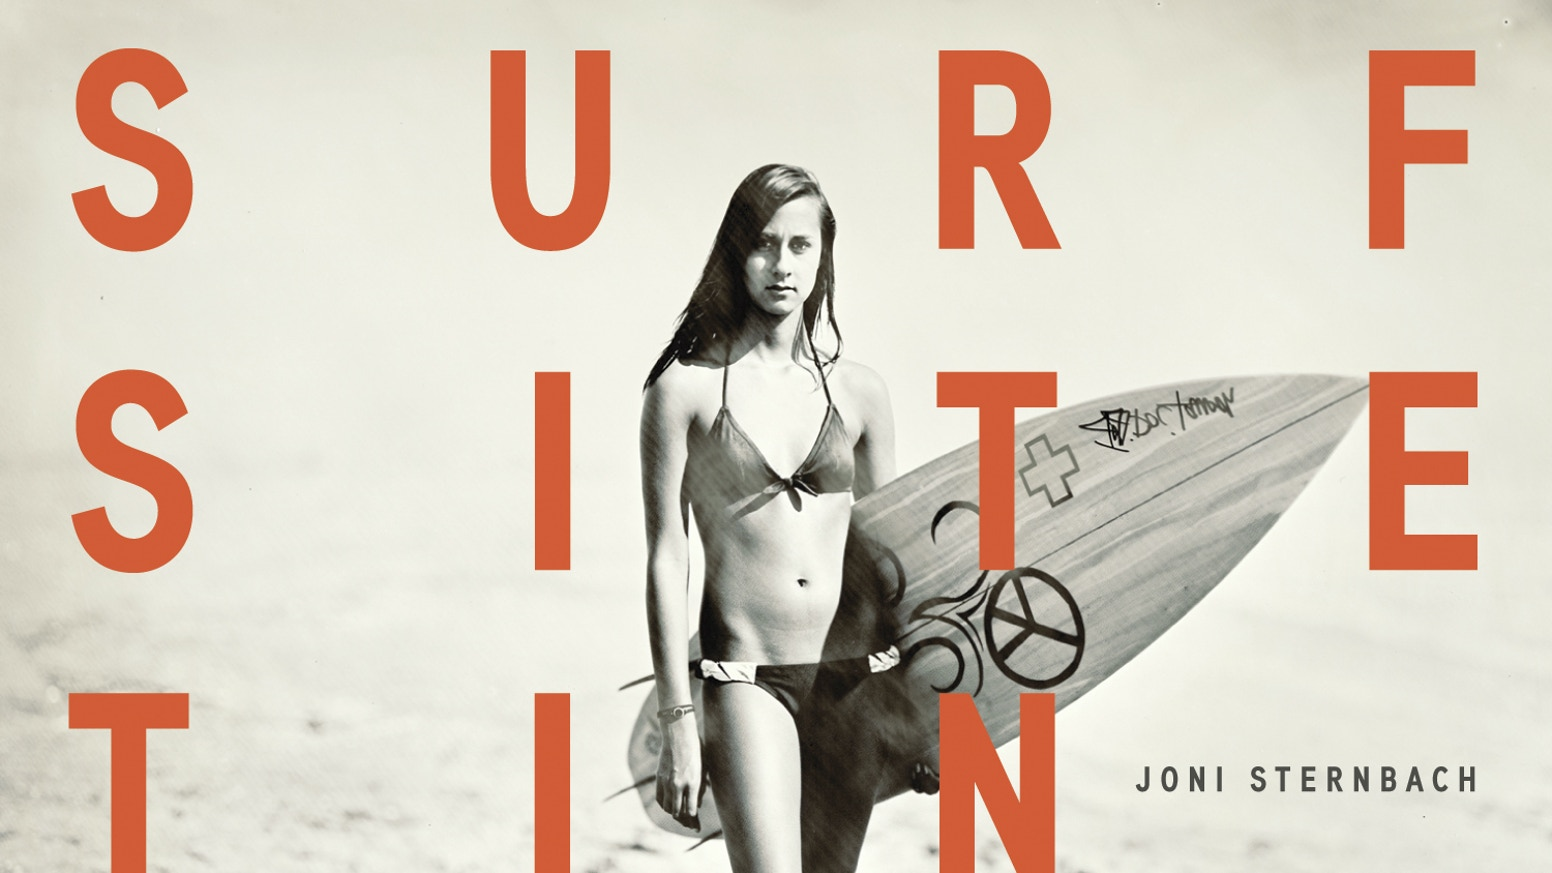 SURF SITE TIN TYPE, is a book project of contemporary tintype portraits of surfers around the globe